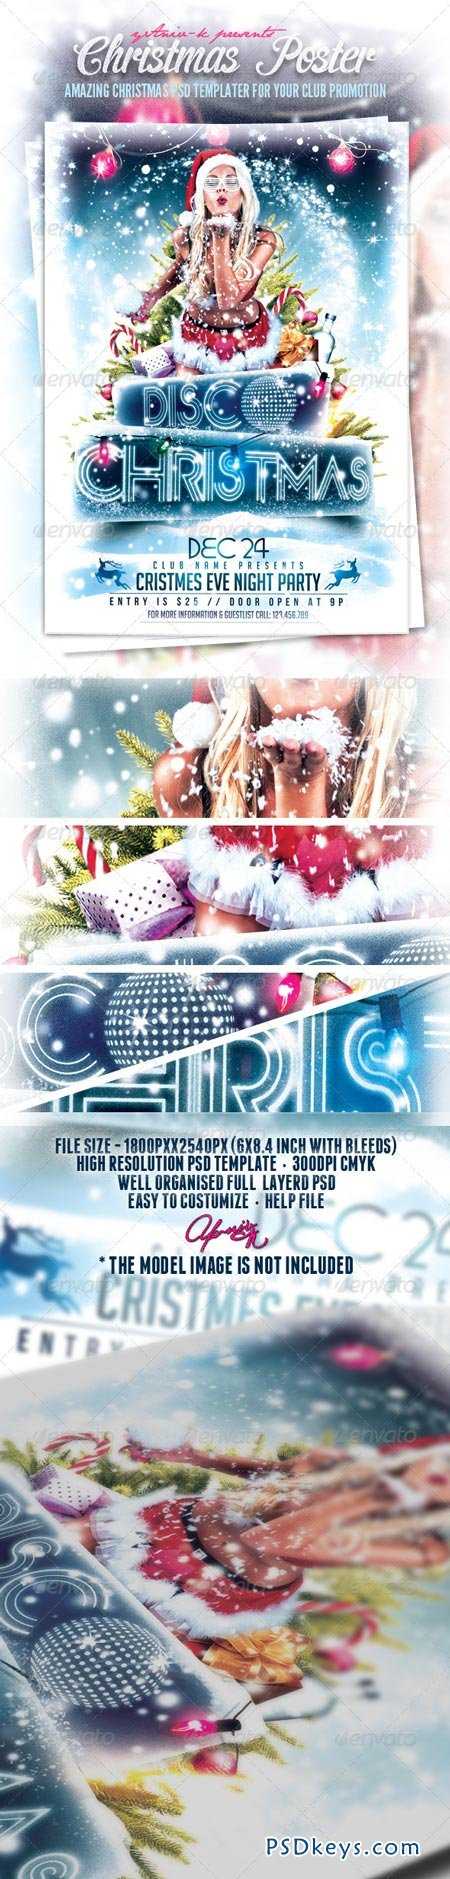 Christmas Event Flyer Template 6249085